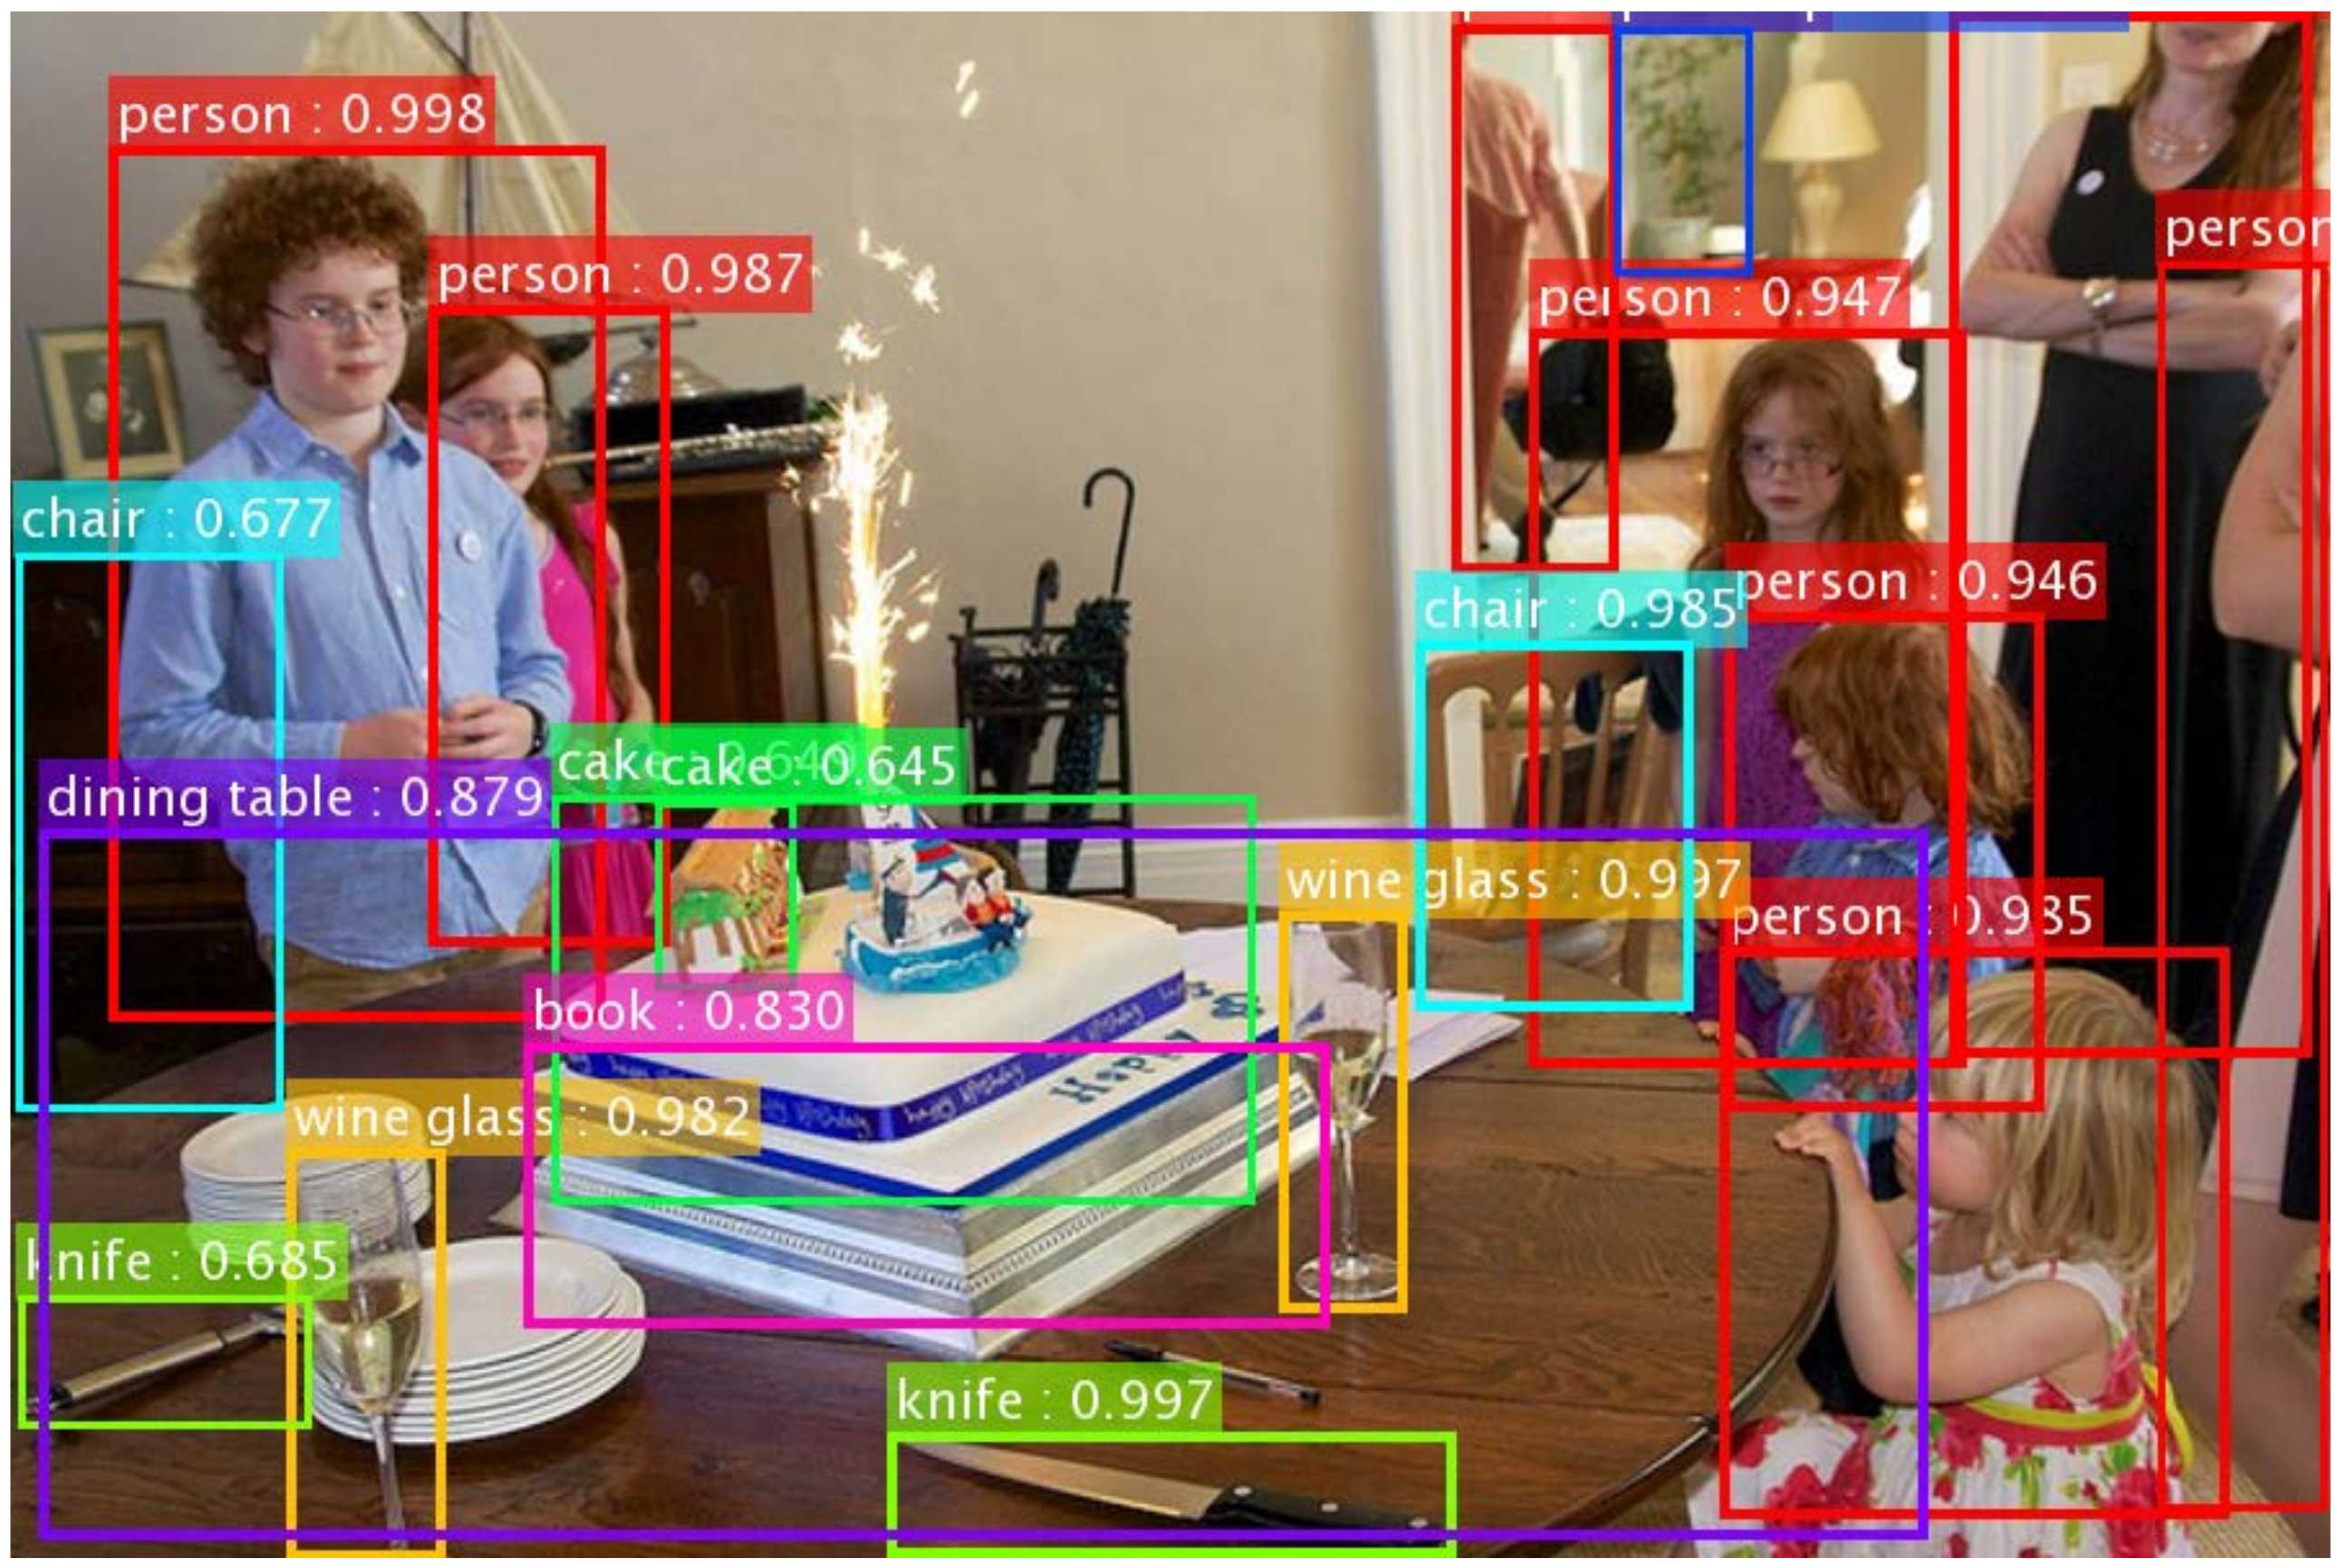 Image Recognition through Object Detection